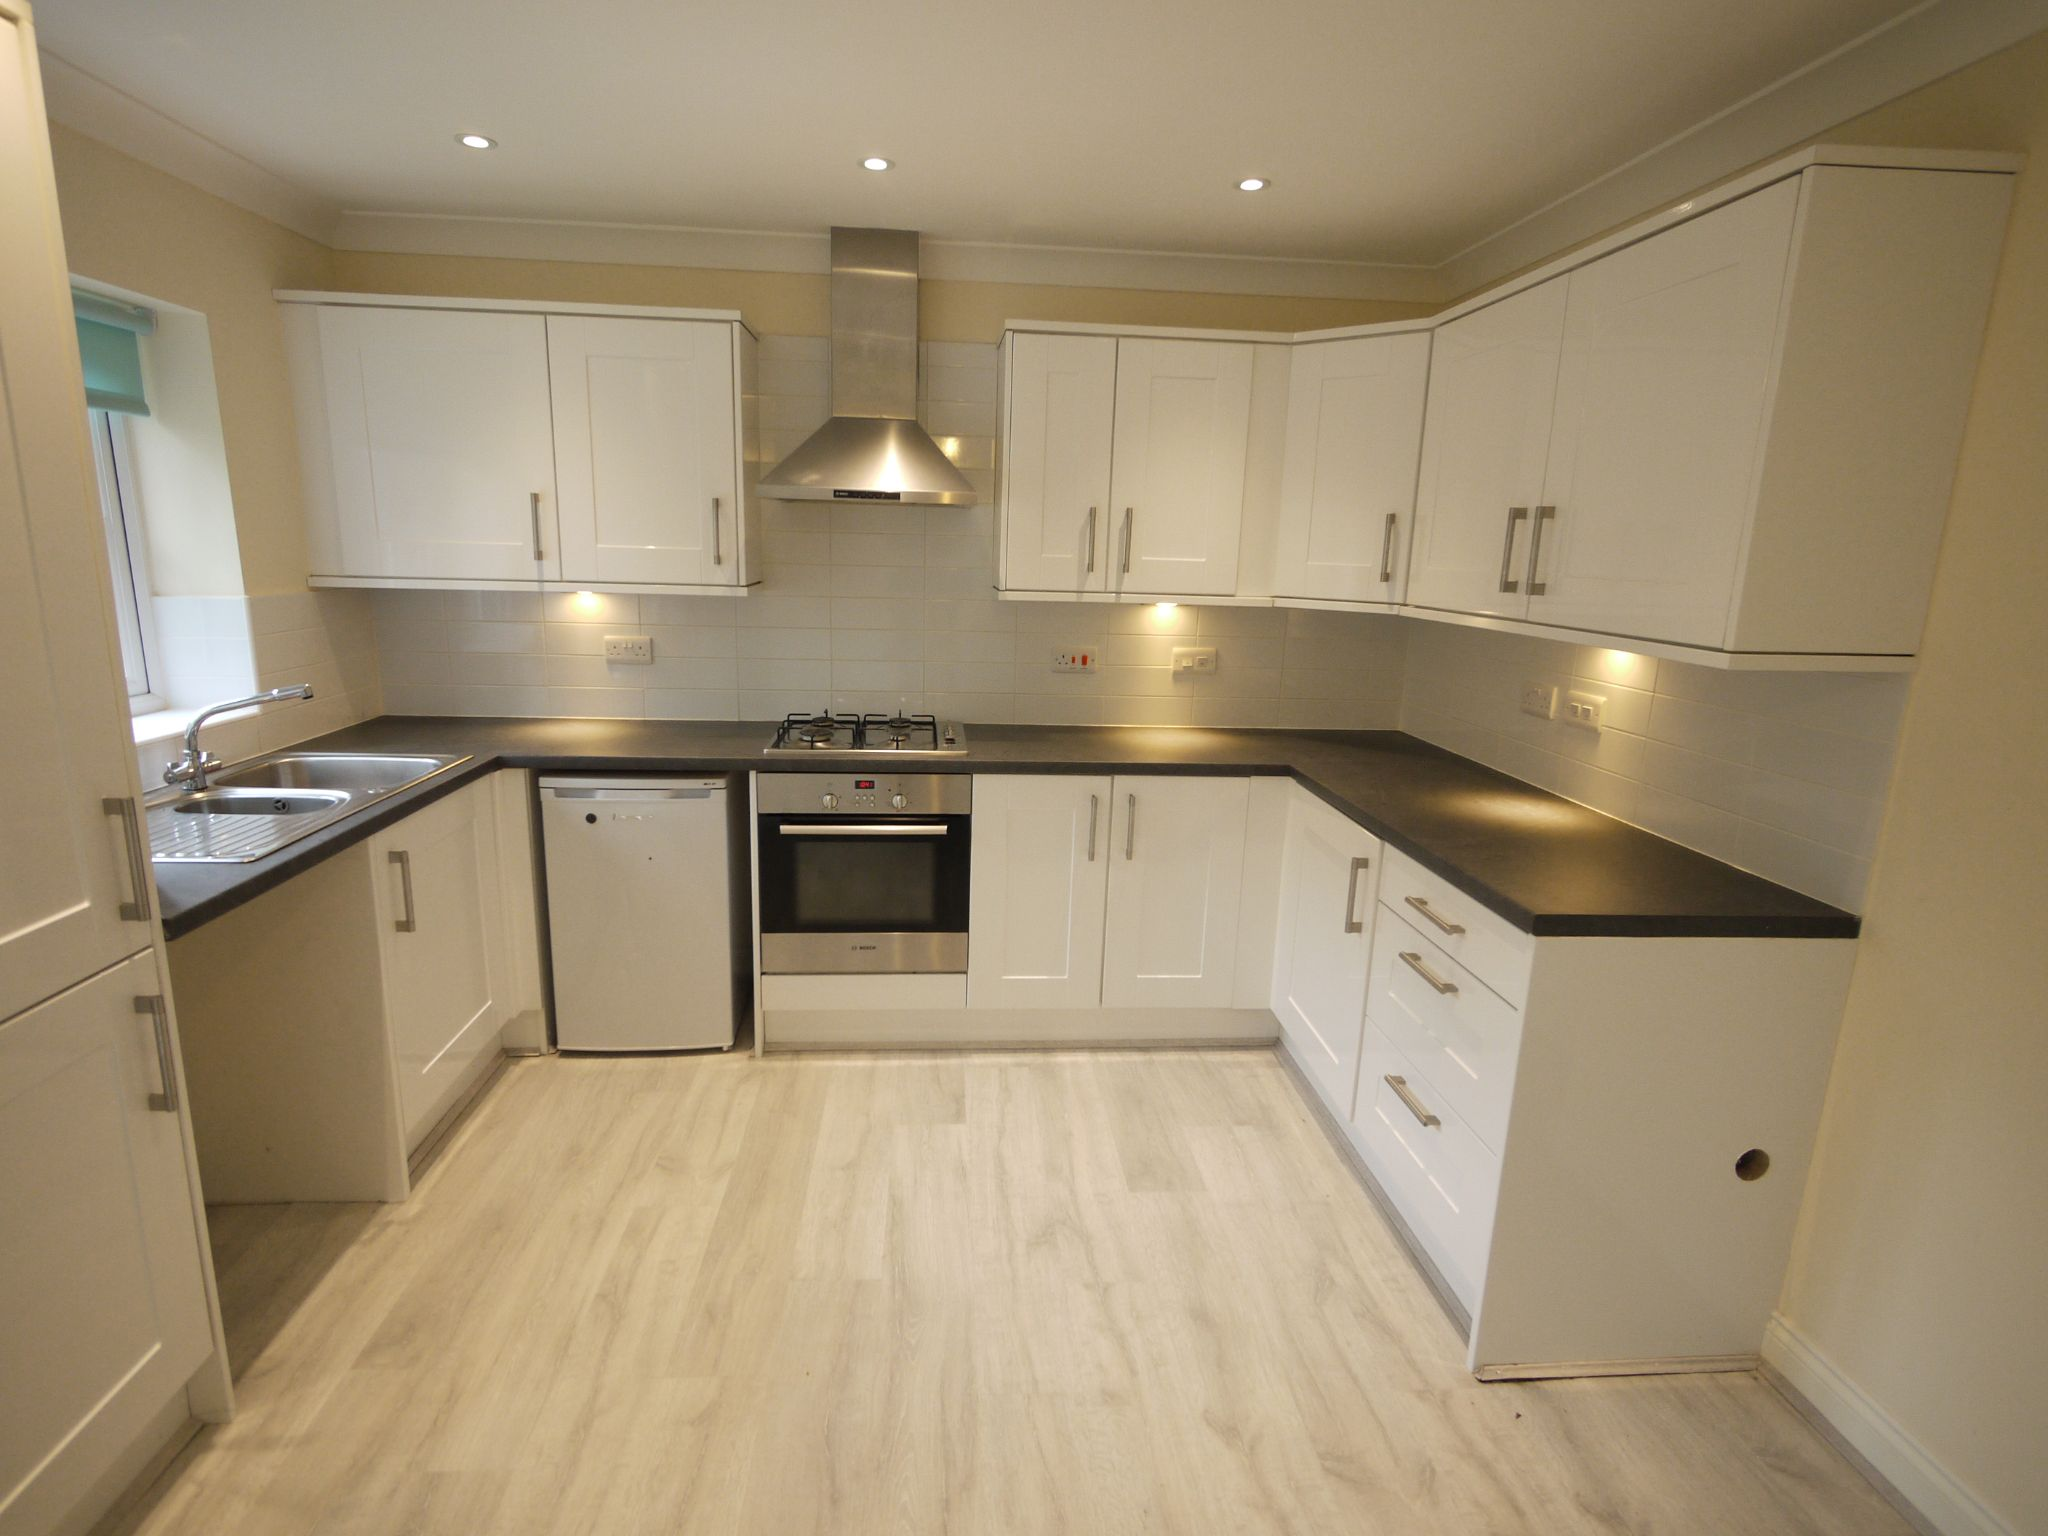 3 bedroom town house SSTC in Mirfield - Photograph 4.